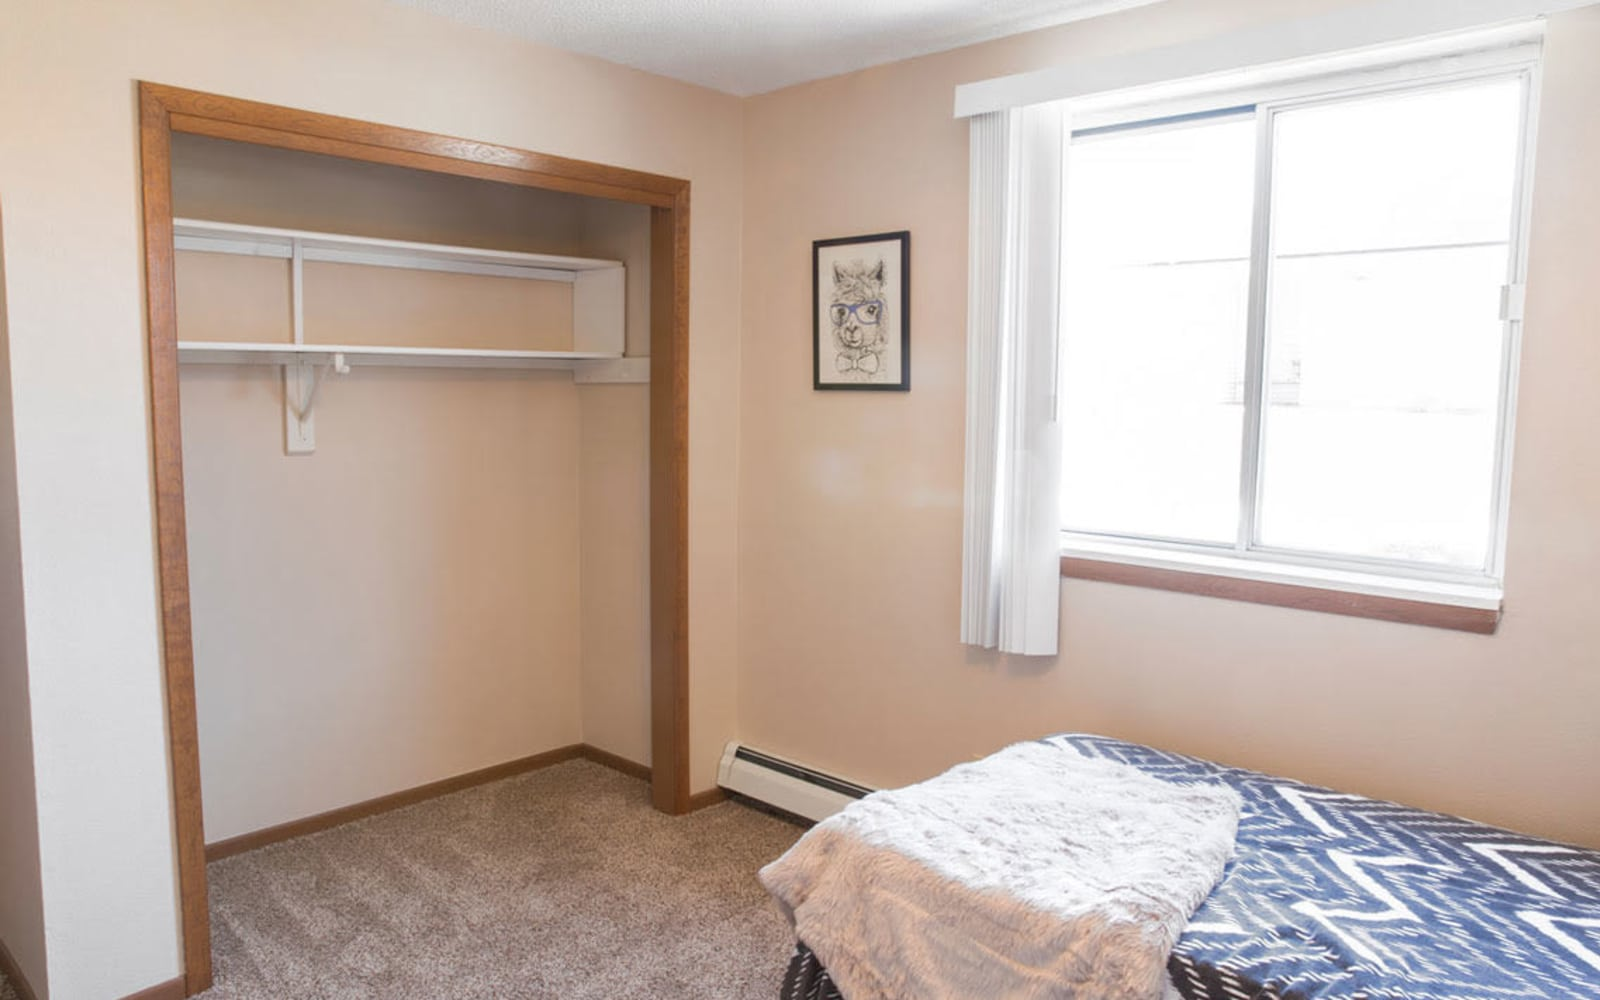 Bedroom with shelving in the closet at Campus View & Kirkwood Court in Cedar Rapids, Iowa